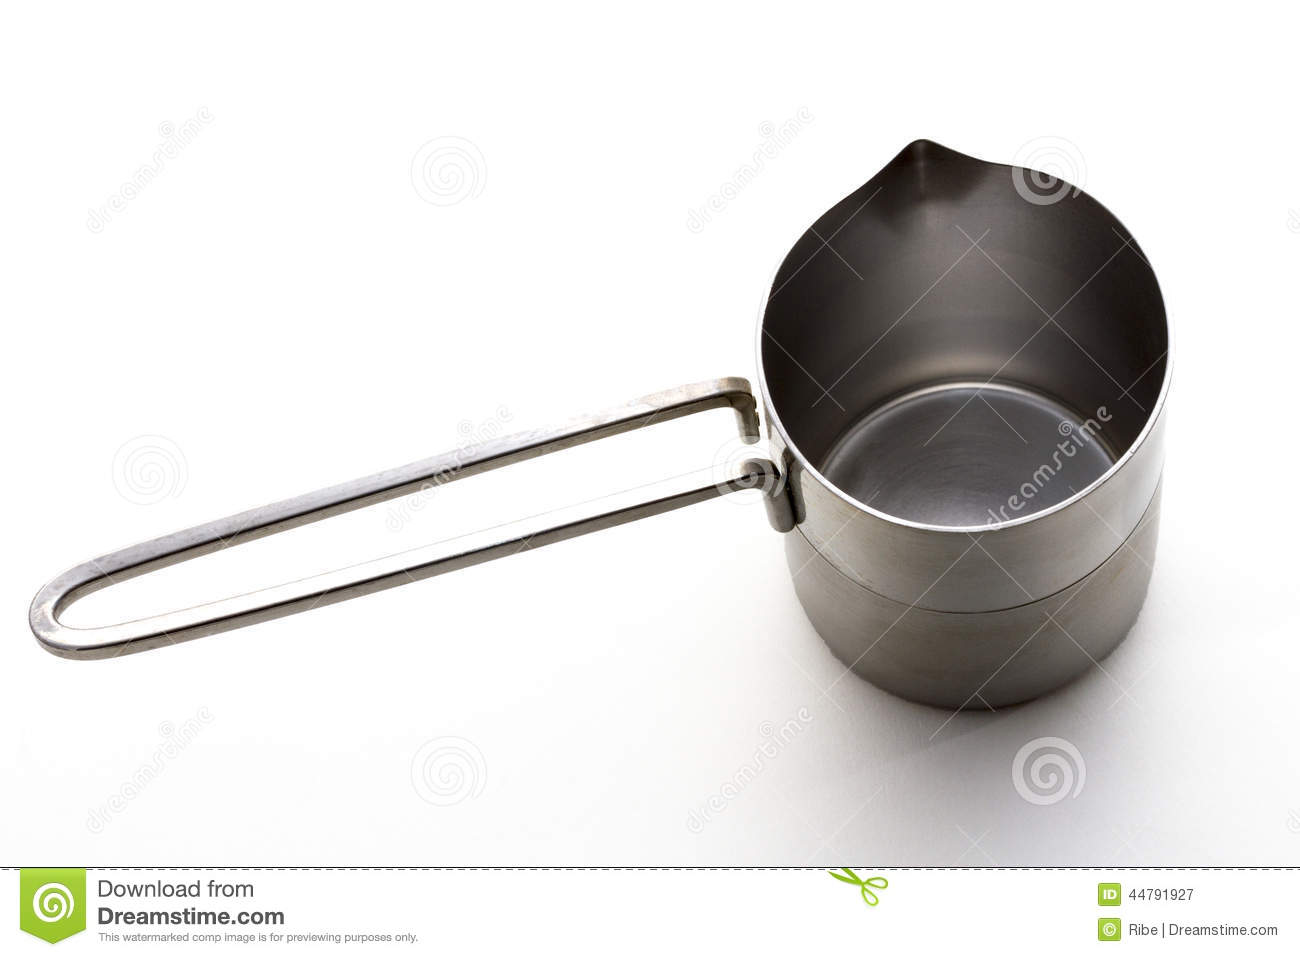 how to clean burnt stainless steel cooking pot